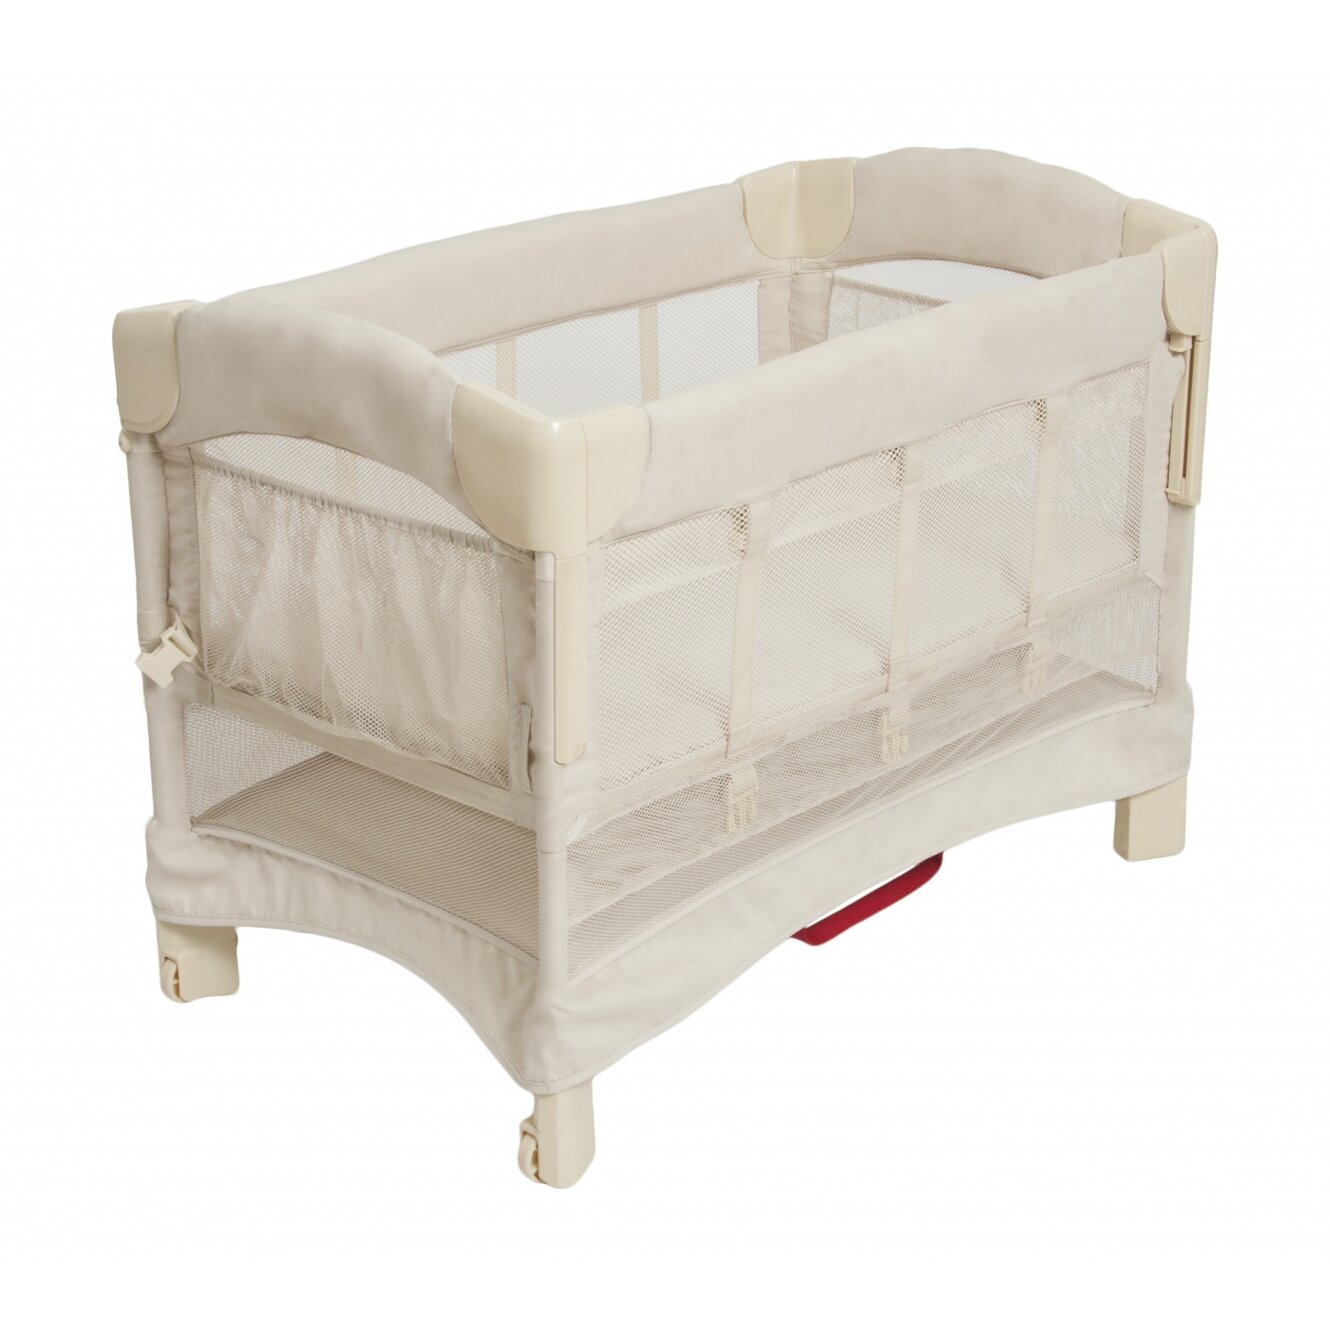 Baby bed extension co sleeper - Arm S Reach Mini Ezee Euro 2 In 1 Co Sleeper